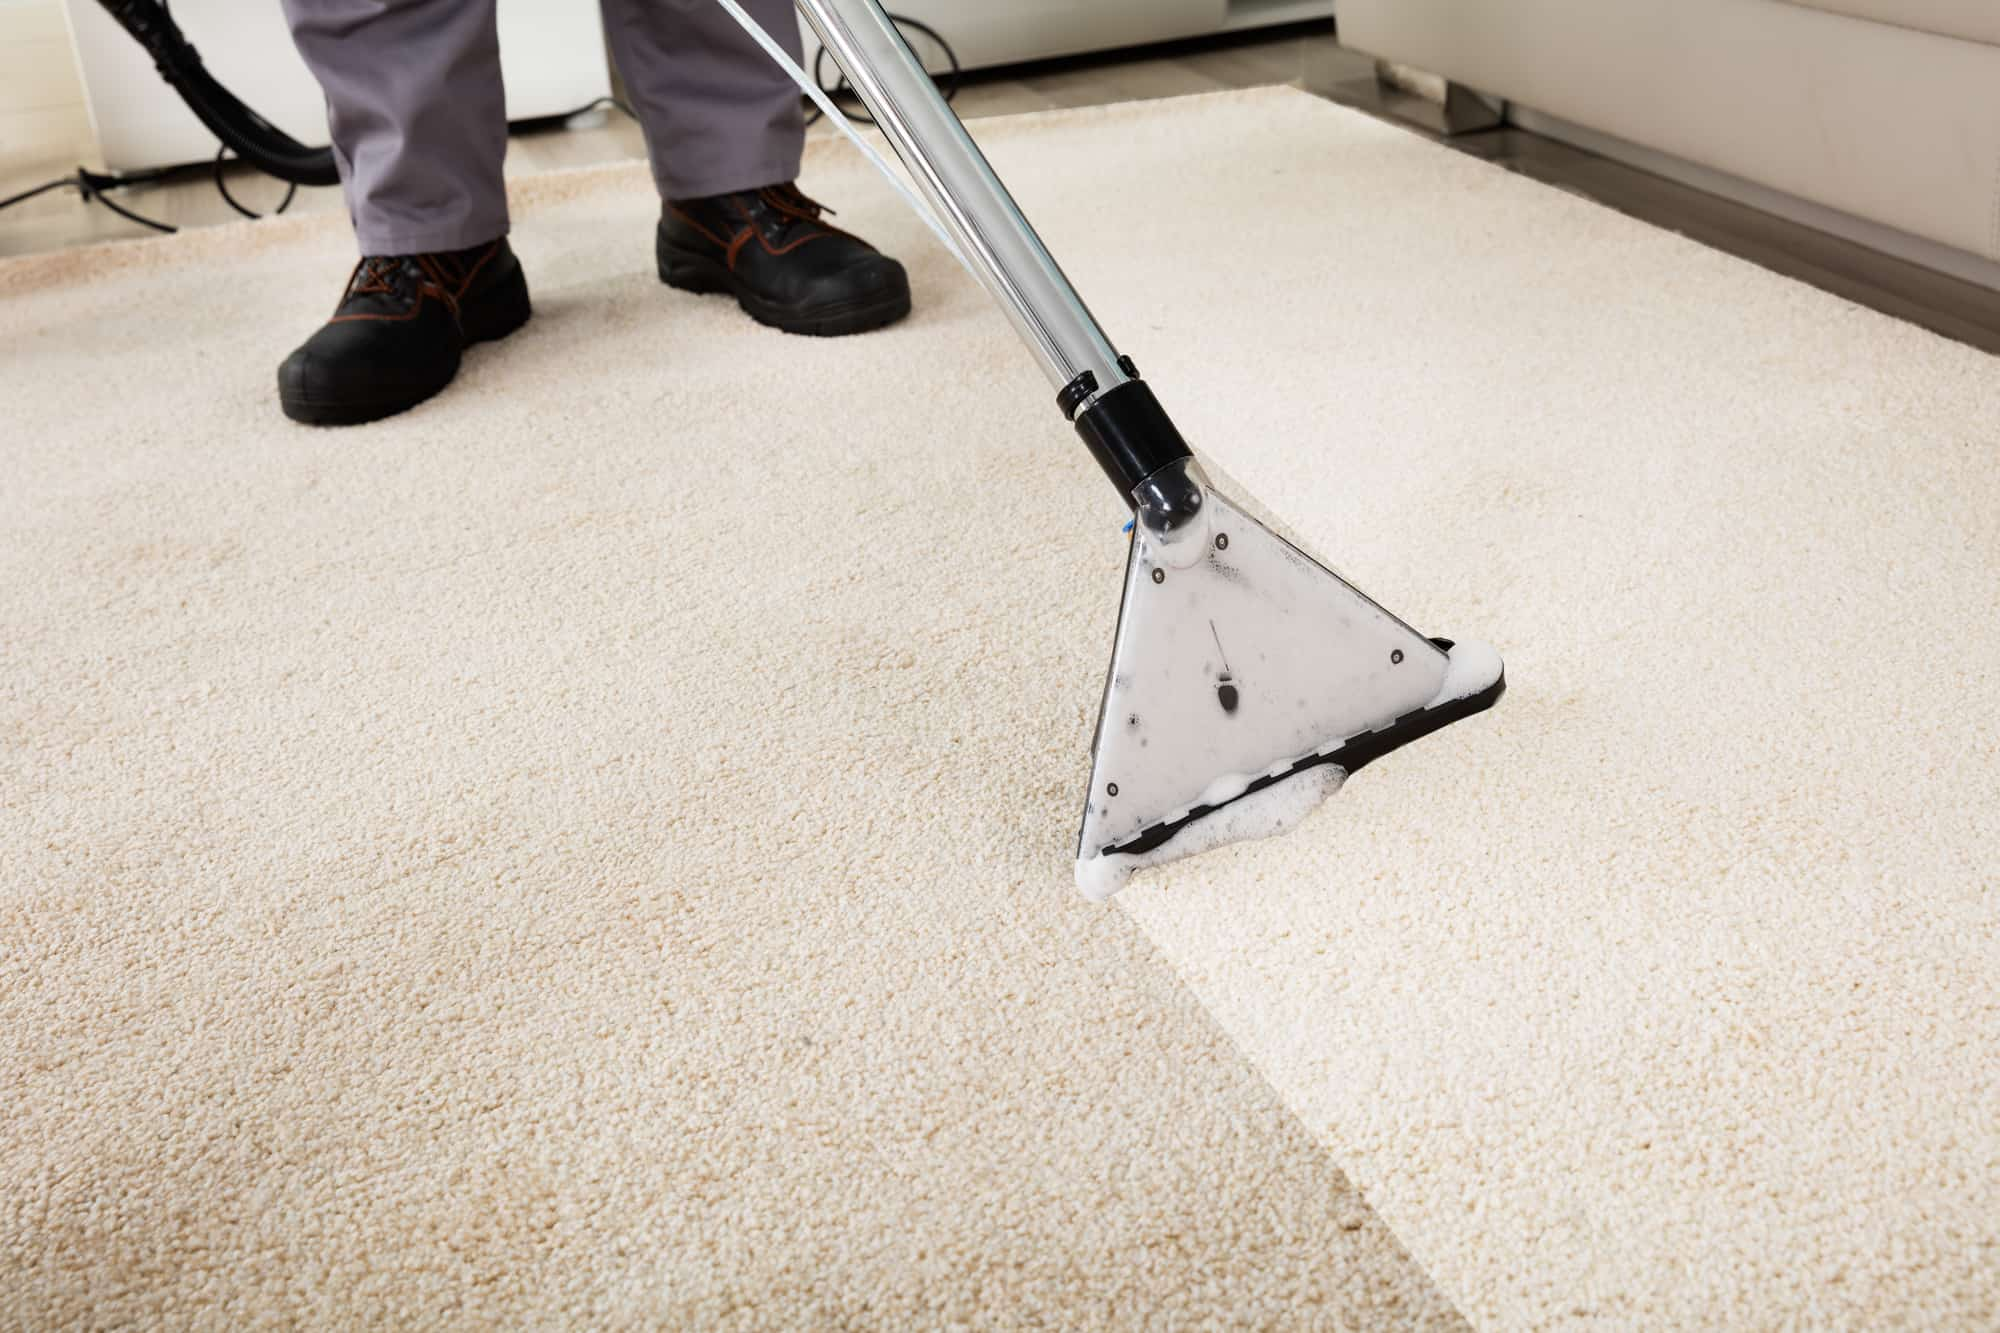 local carpet cleaning company